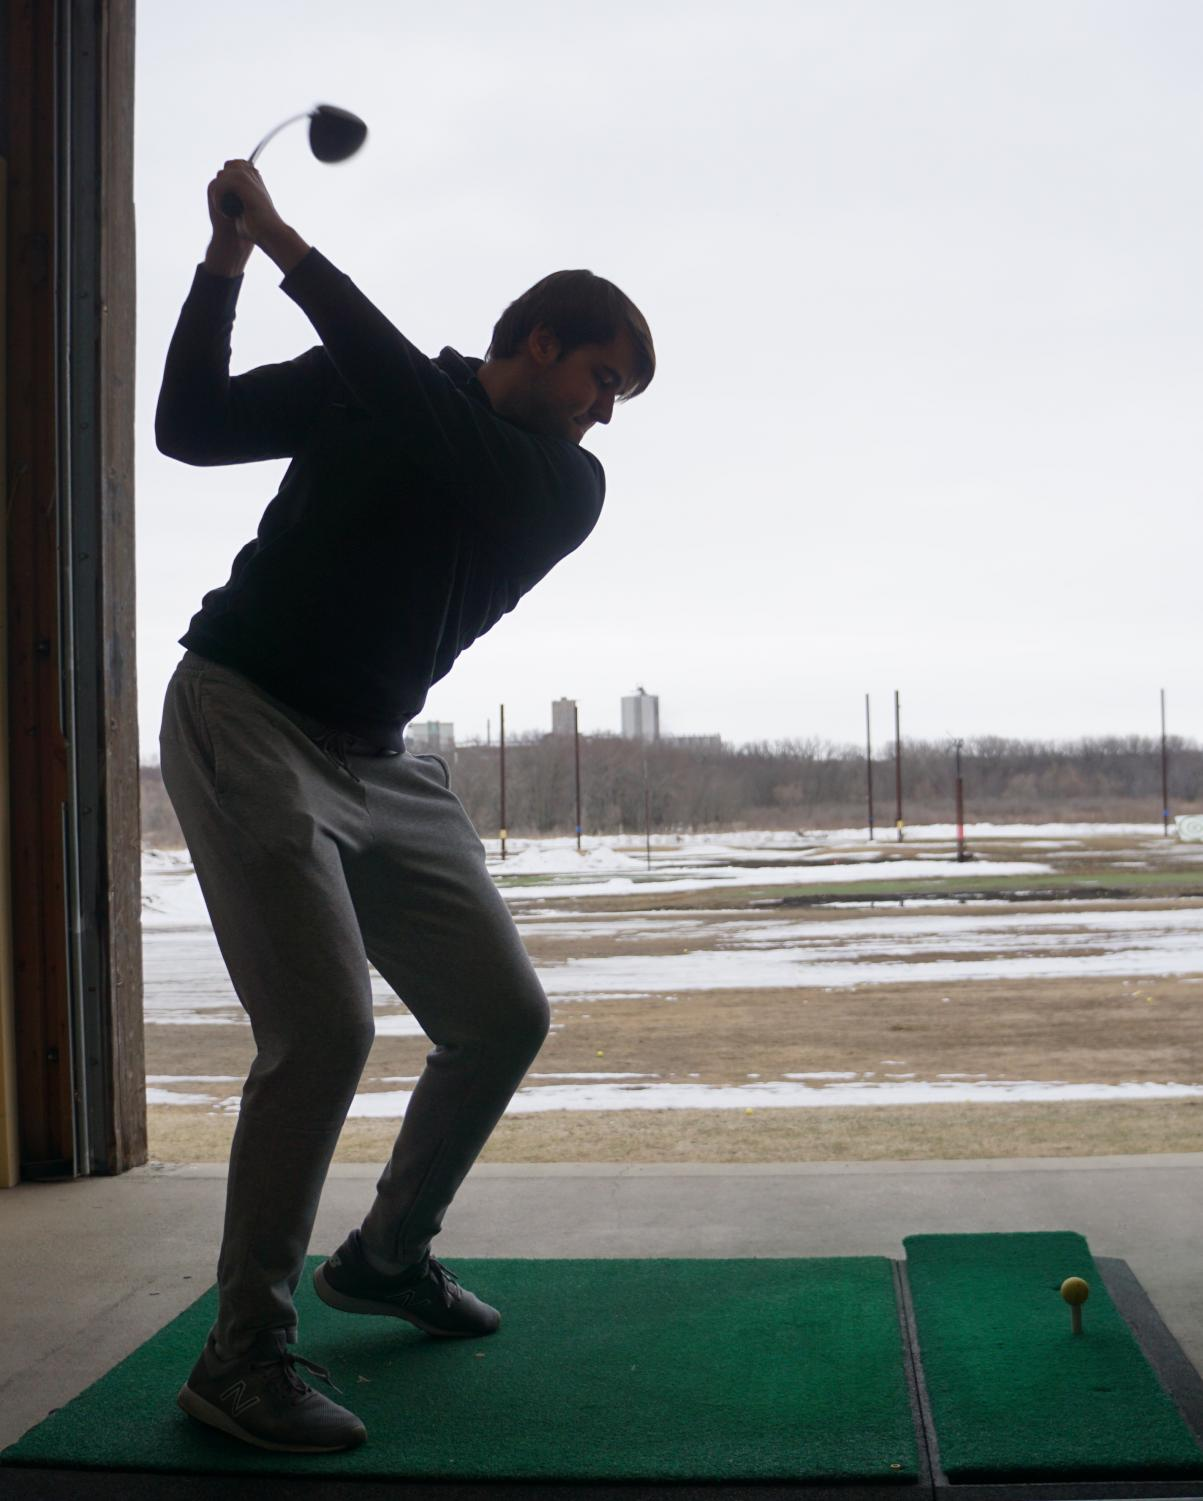 Senior Max Byzewski and the other golfers practiced indoors.